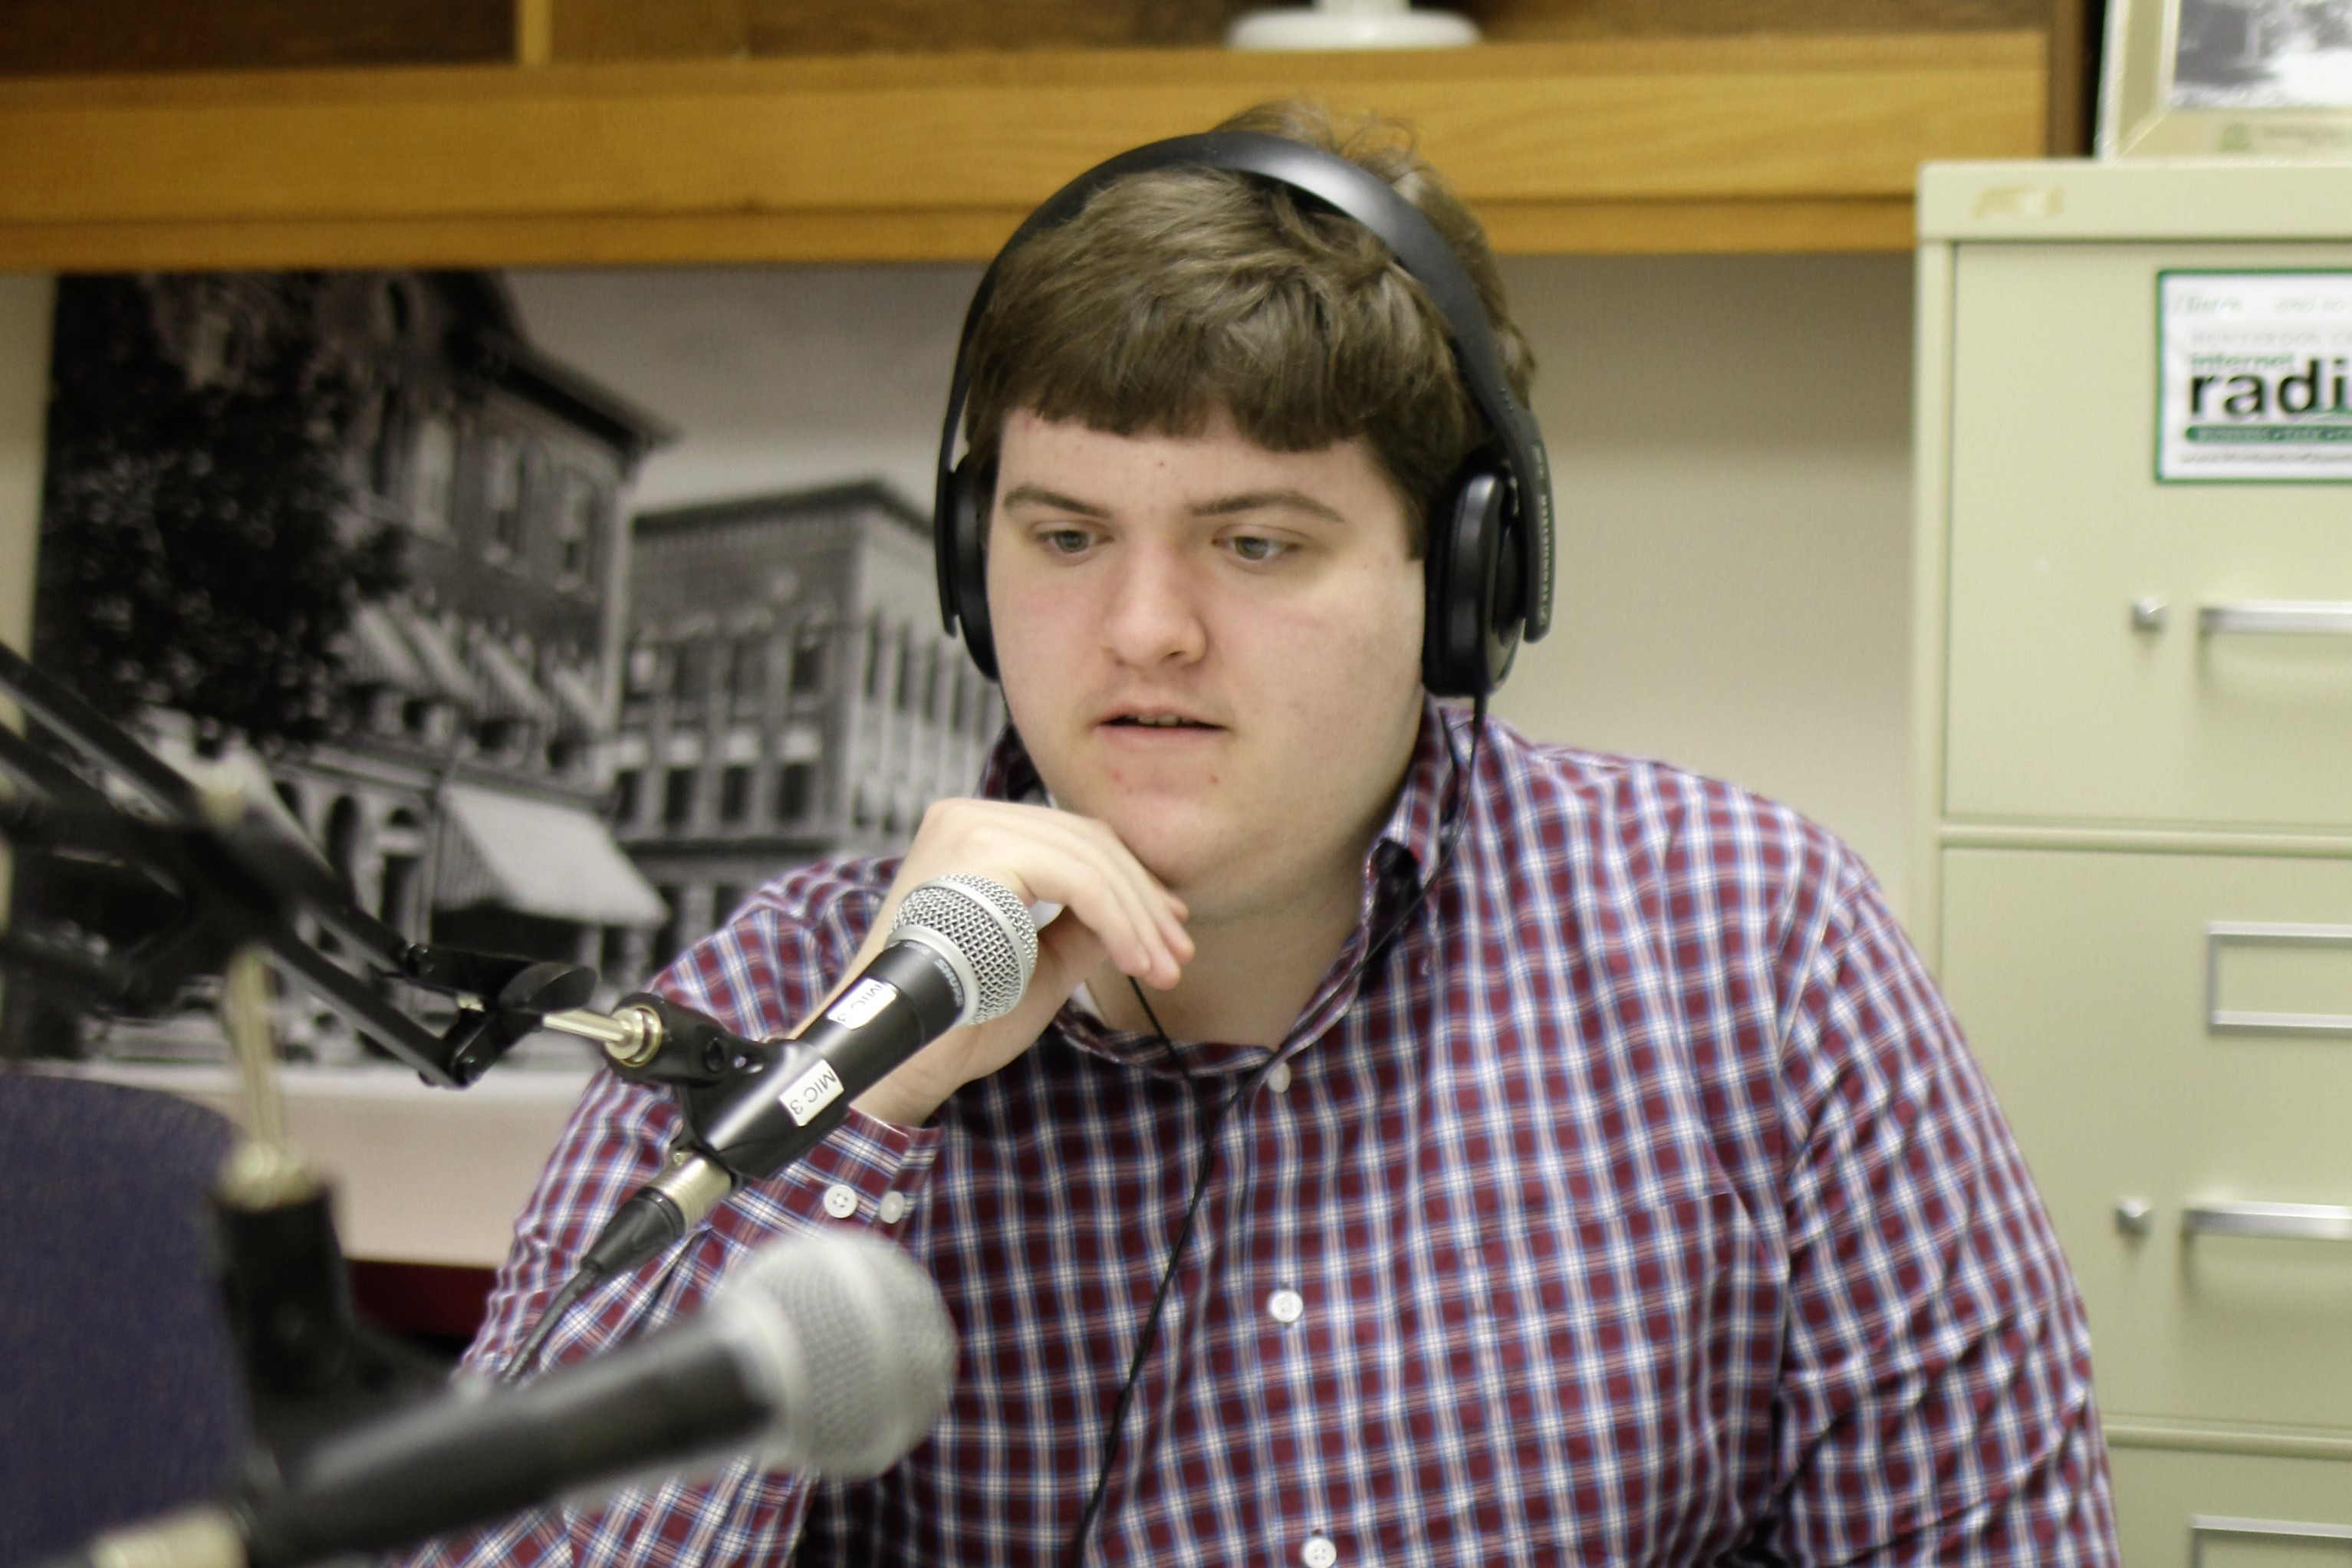 A Hunterdon Prep student wearing headphones and speaking into a microphone during a recording session at a business internship.